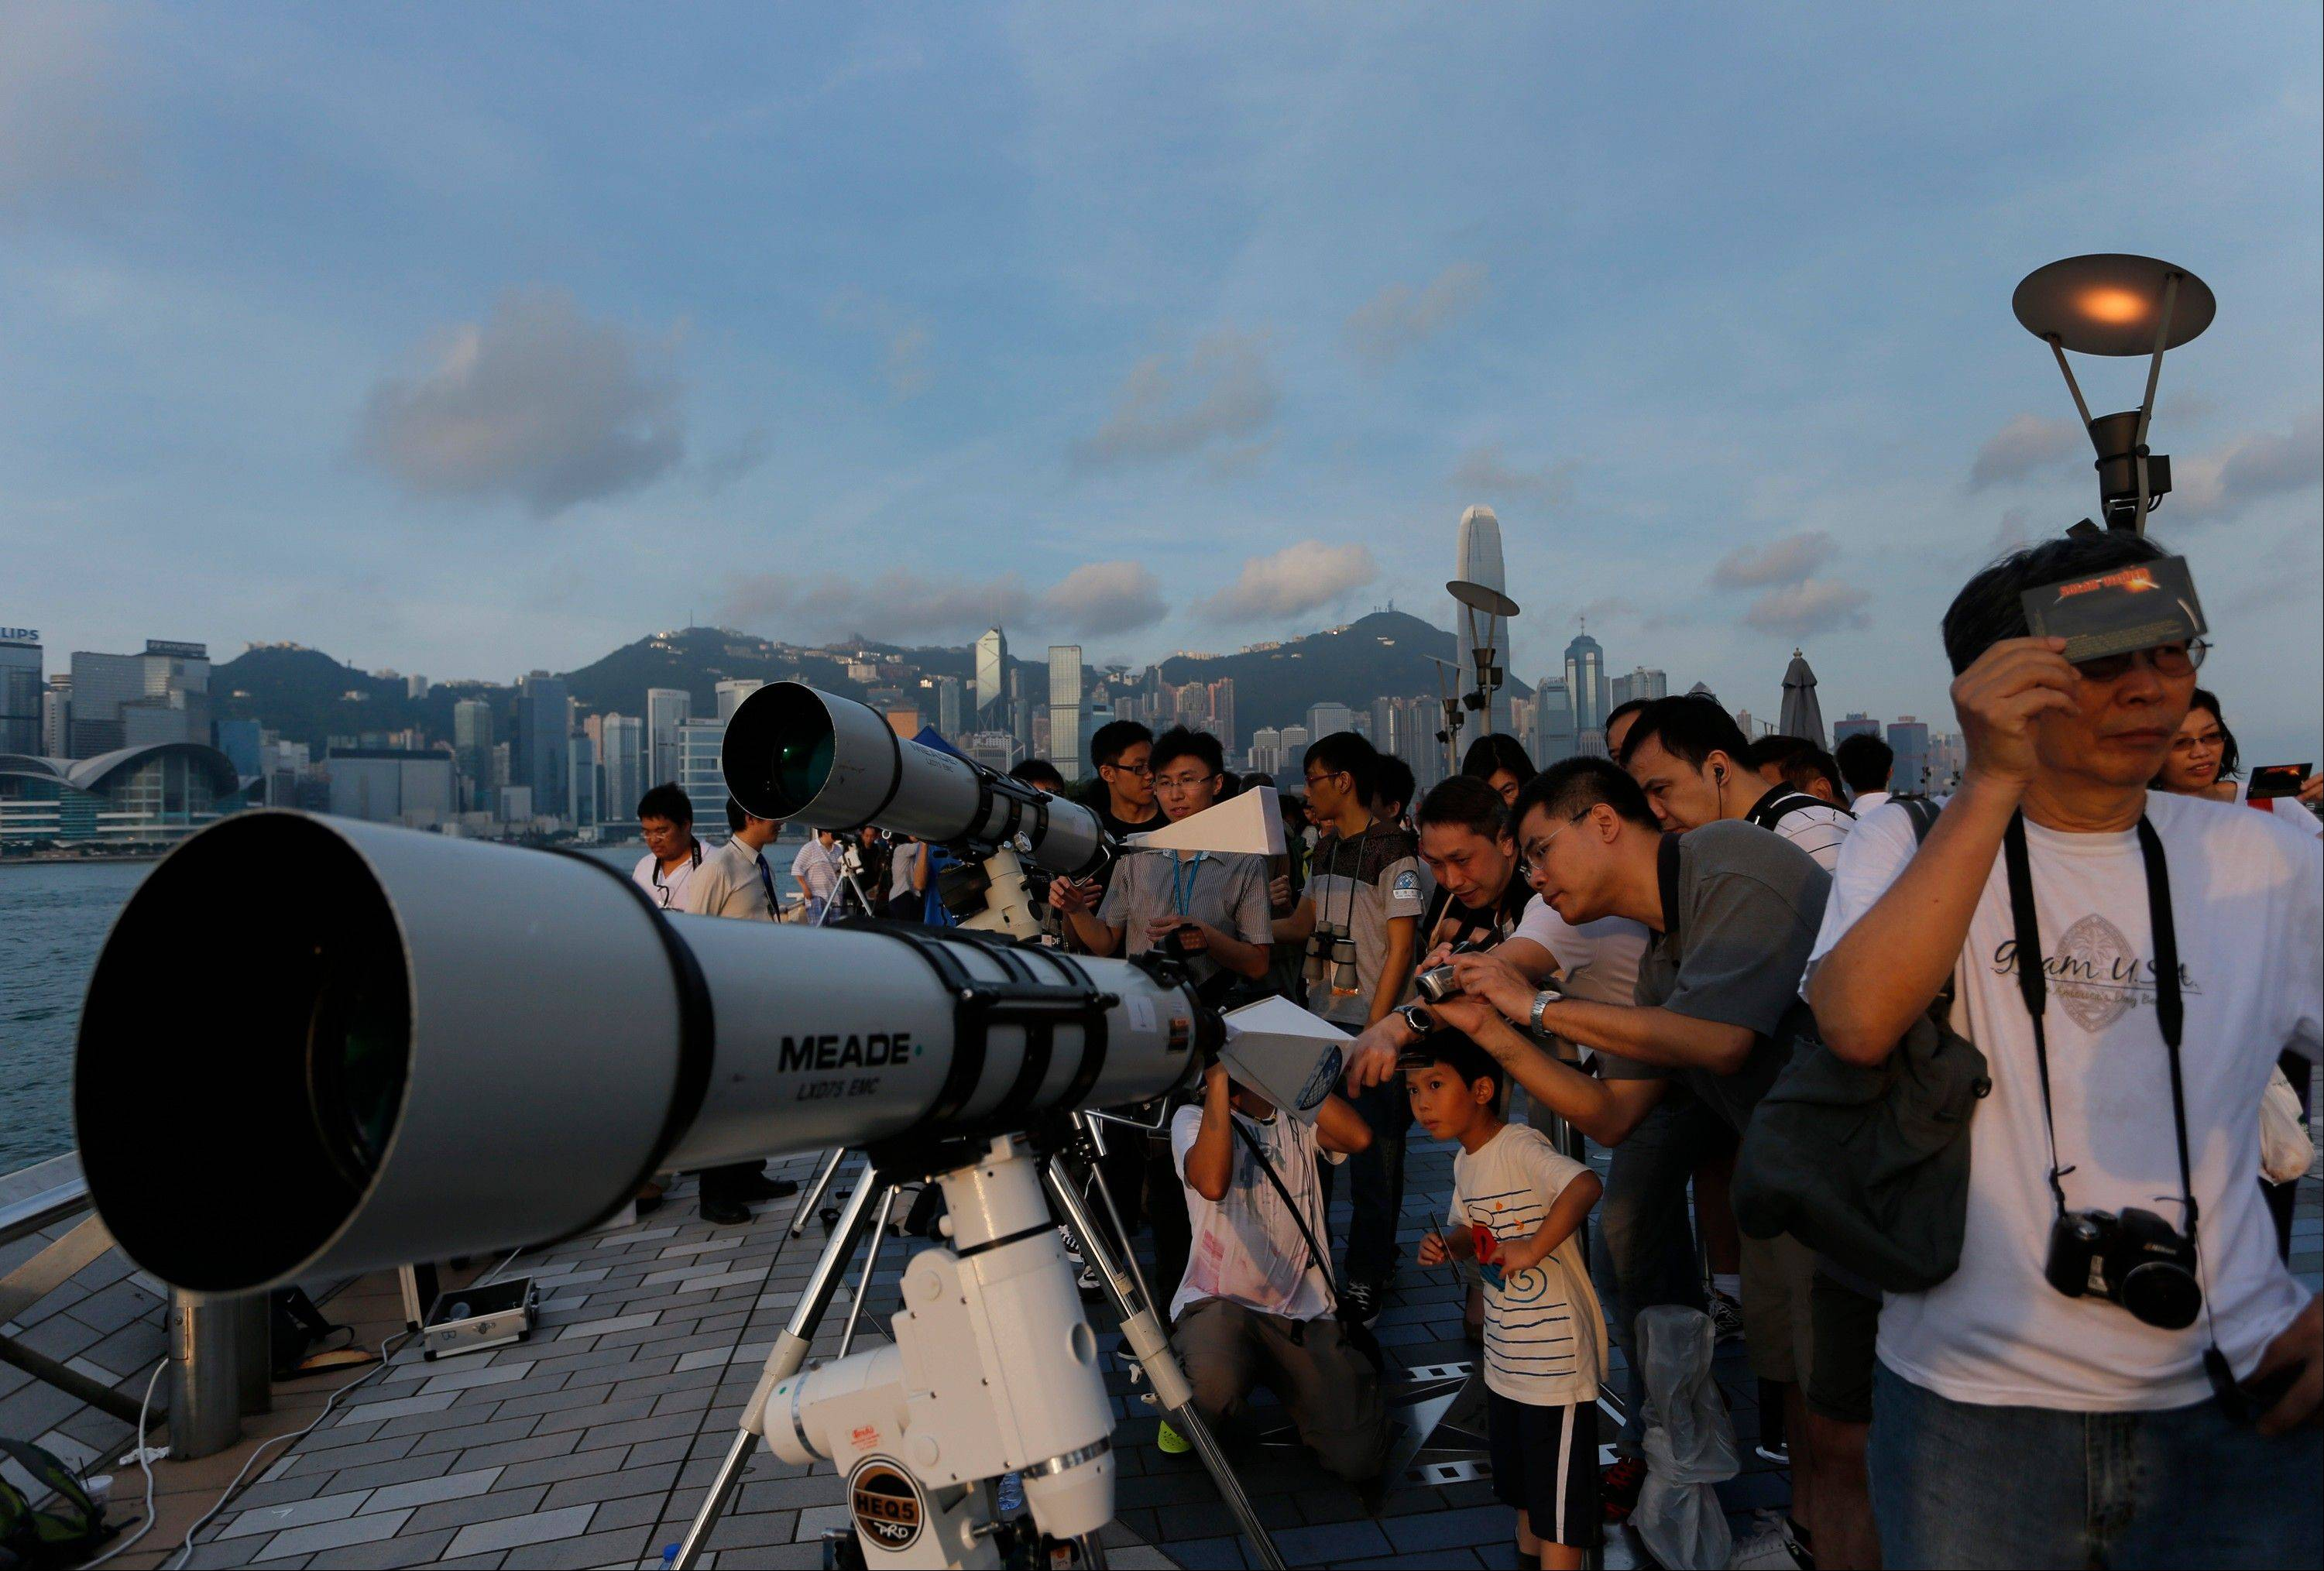 Hong Kong stargazers use telescopes to observe the transit of Venus along the Victoria Habour in Hong Kong Wednesday, June 6, 2012. Stargazers around the world are setting up special telescopes and passing out cardboard eclipse glasses to view the once-in-a-lifetime celestial cameo of Venus passing in front of the sun.